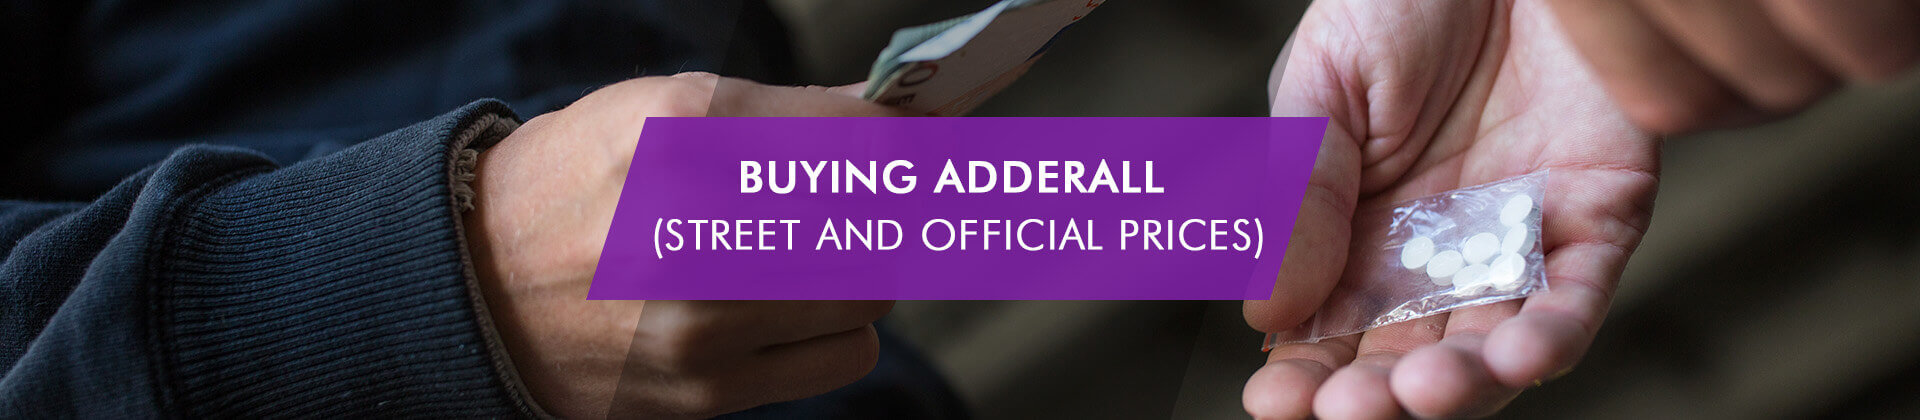 street and official prices for Adderall